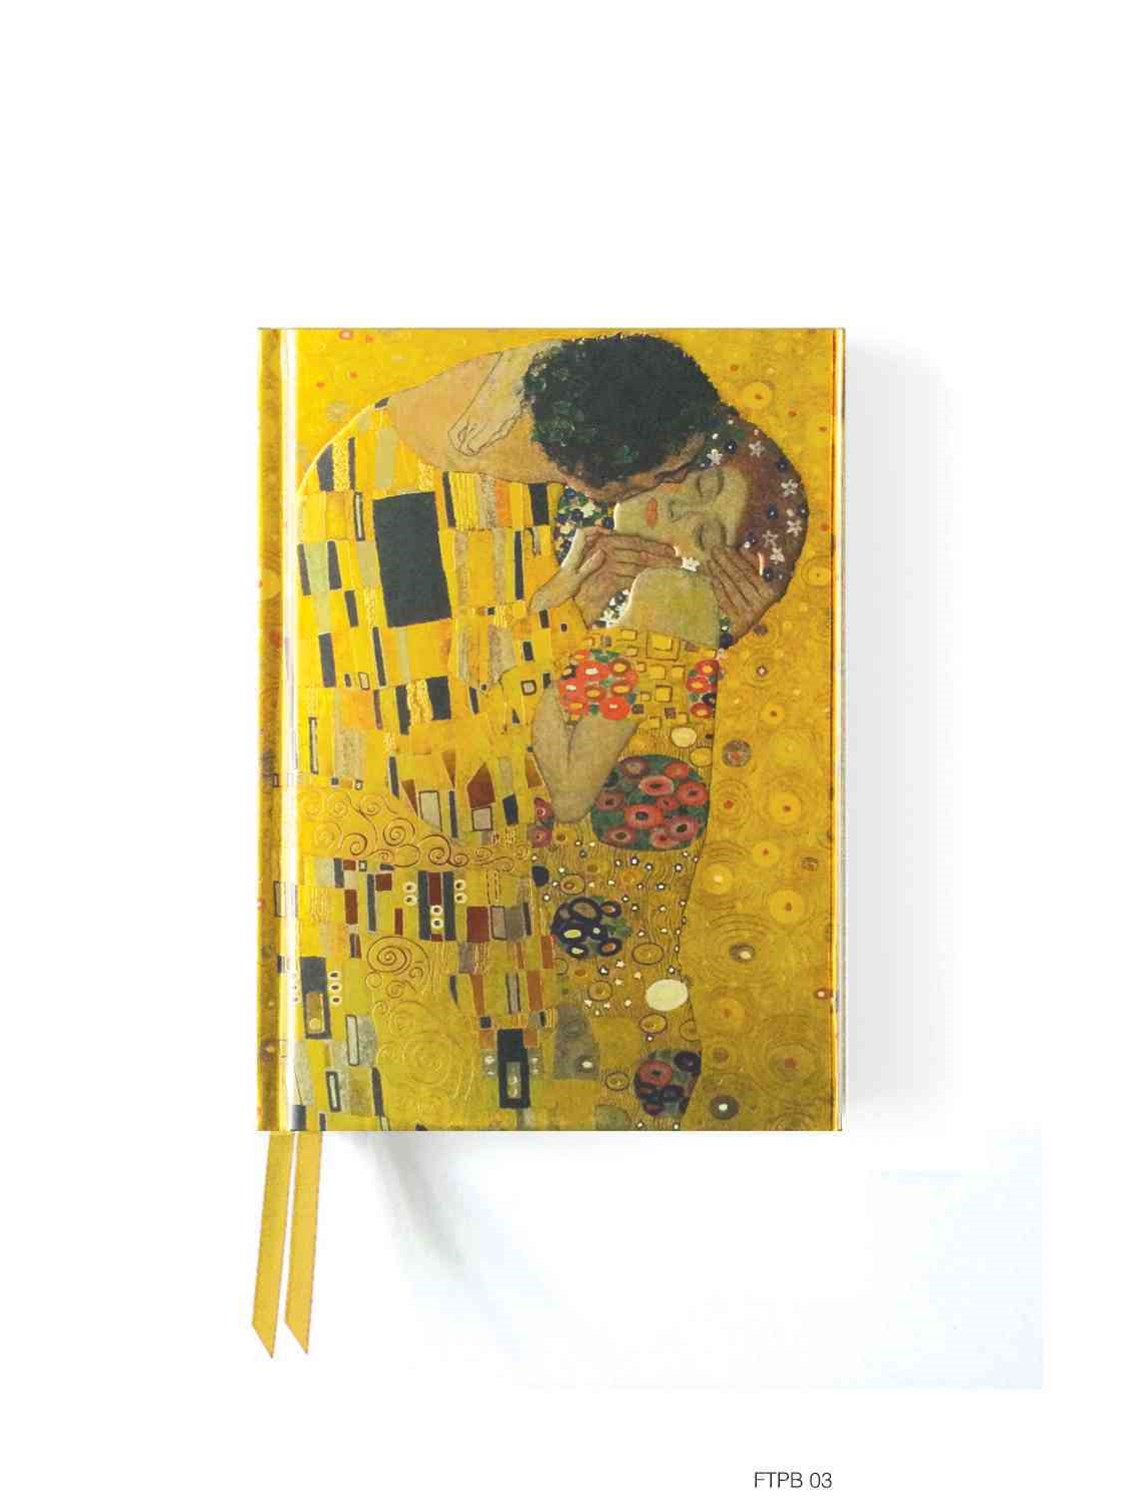 Foiled Pocket Journal: Klimt'sThe Kiss